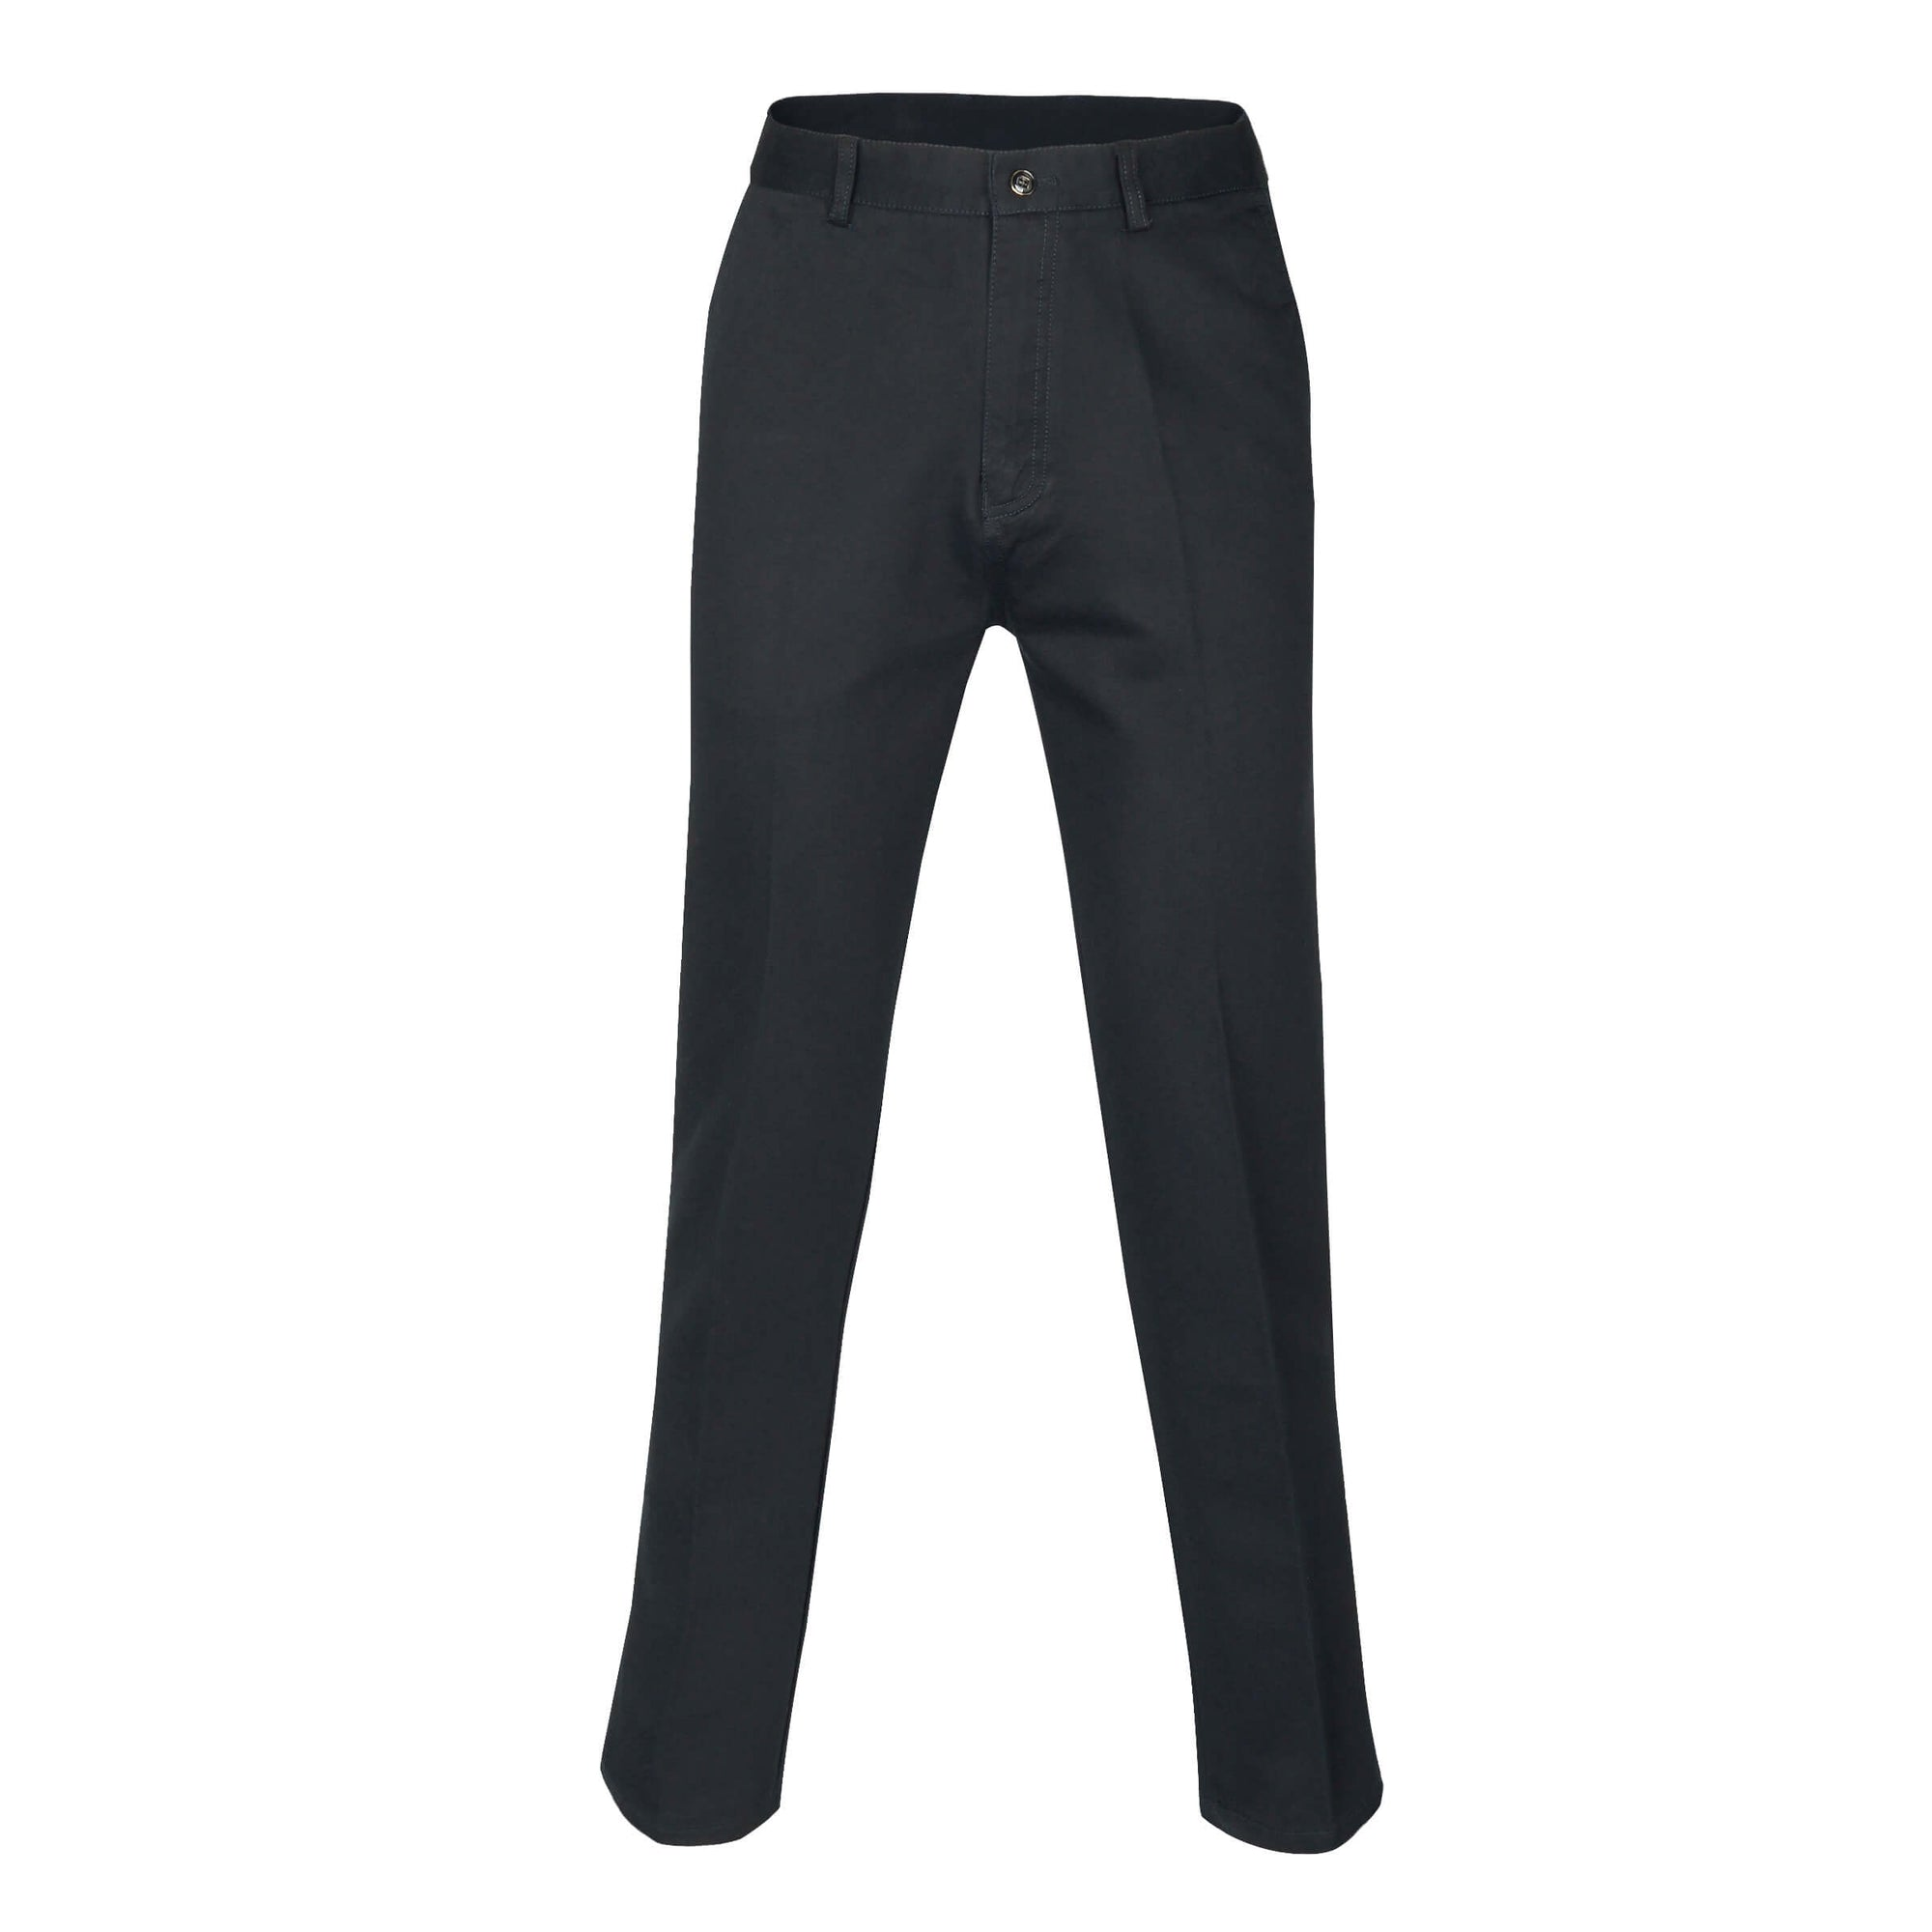 Mens Khaki Pants - Black